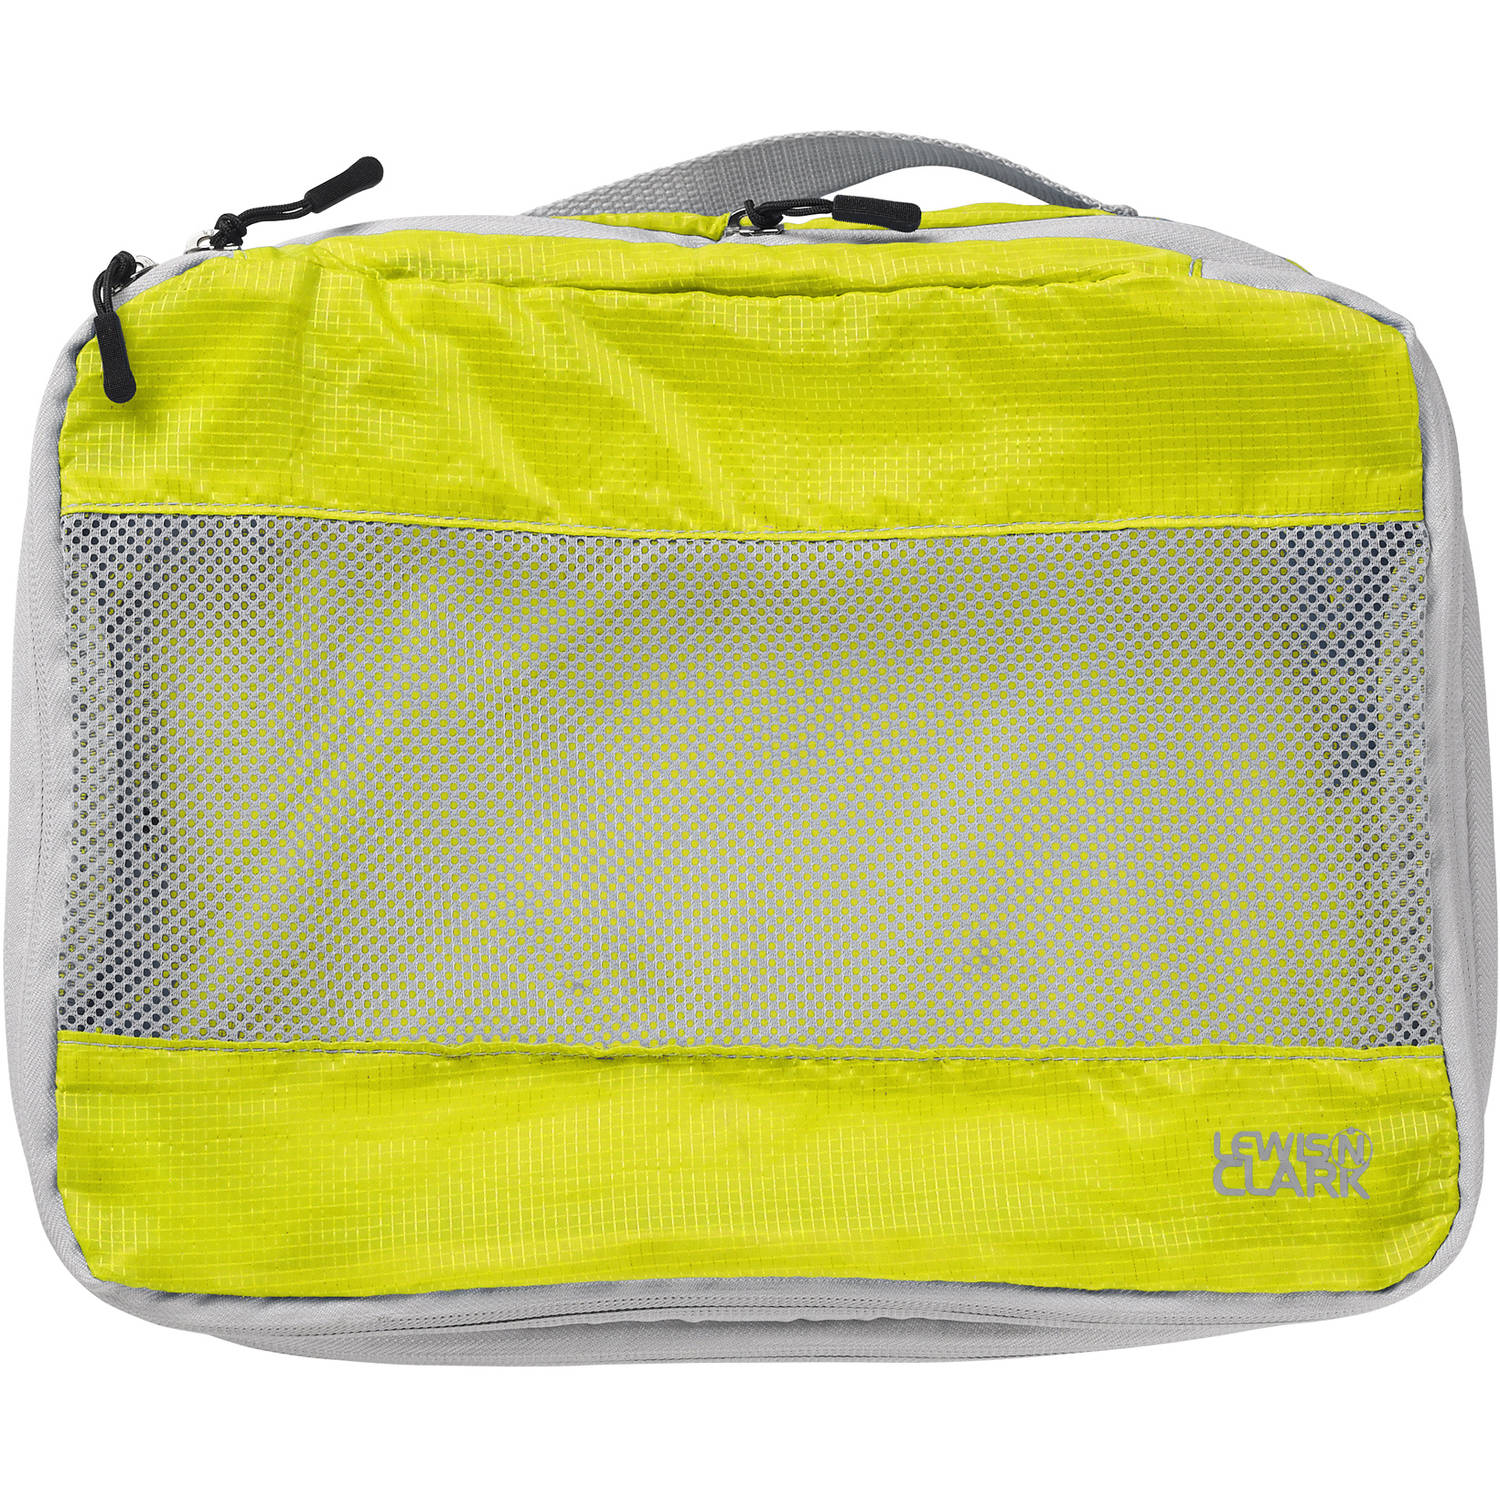 ElectroLight Packing Cube, Medium, Neon Lemon